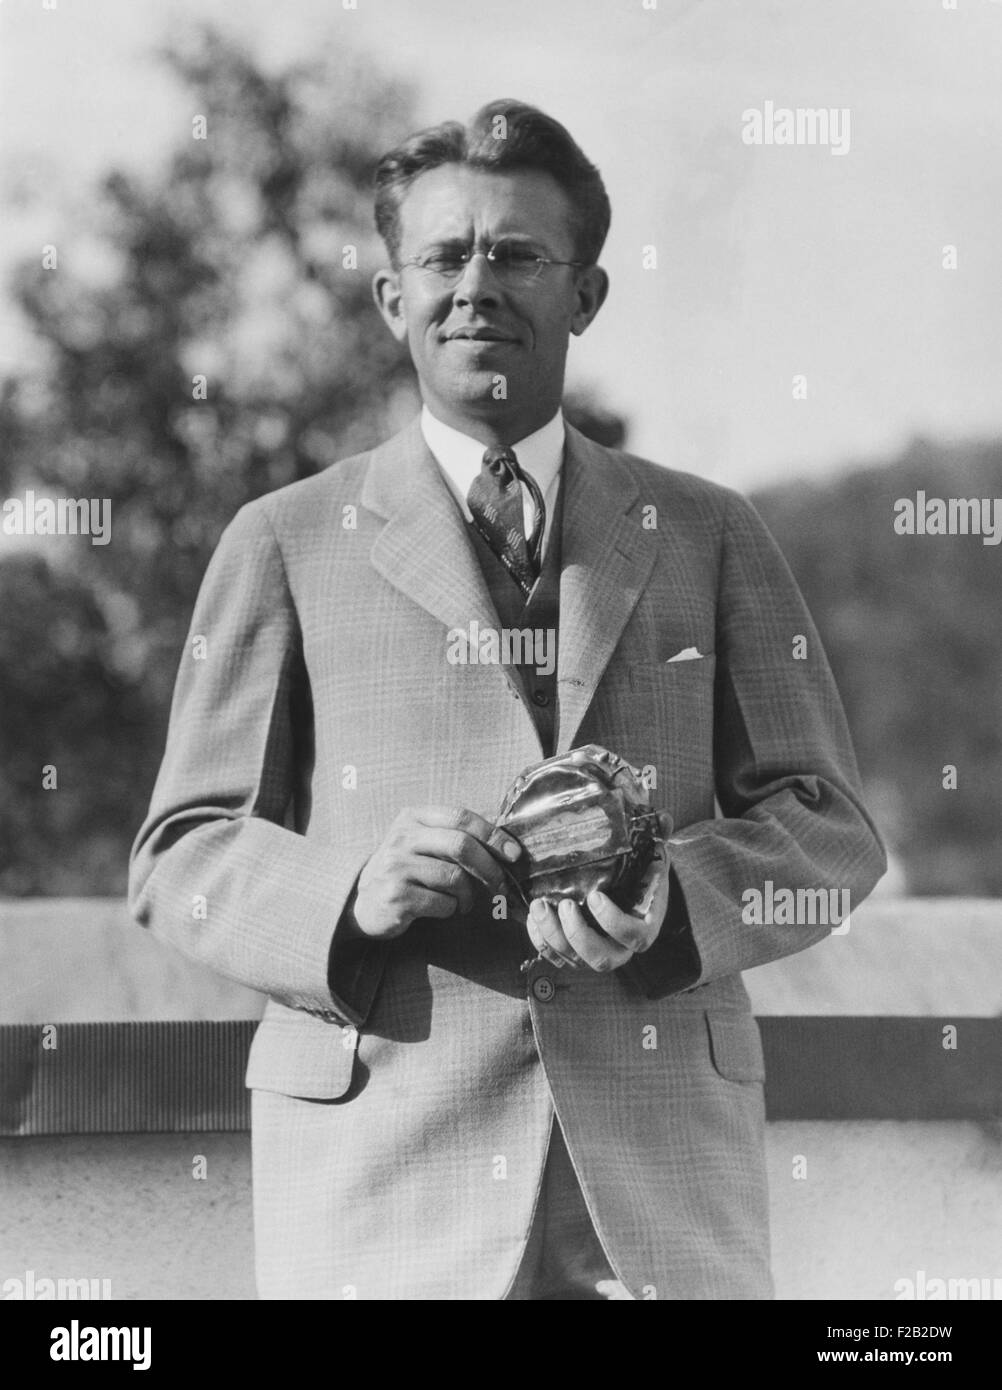 Ernest Orlando Lawrence, American nuclear physicist in 1935. He received a patent for the cyclotron in 1934. In 1939 he won the Stock Photo